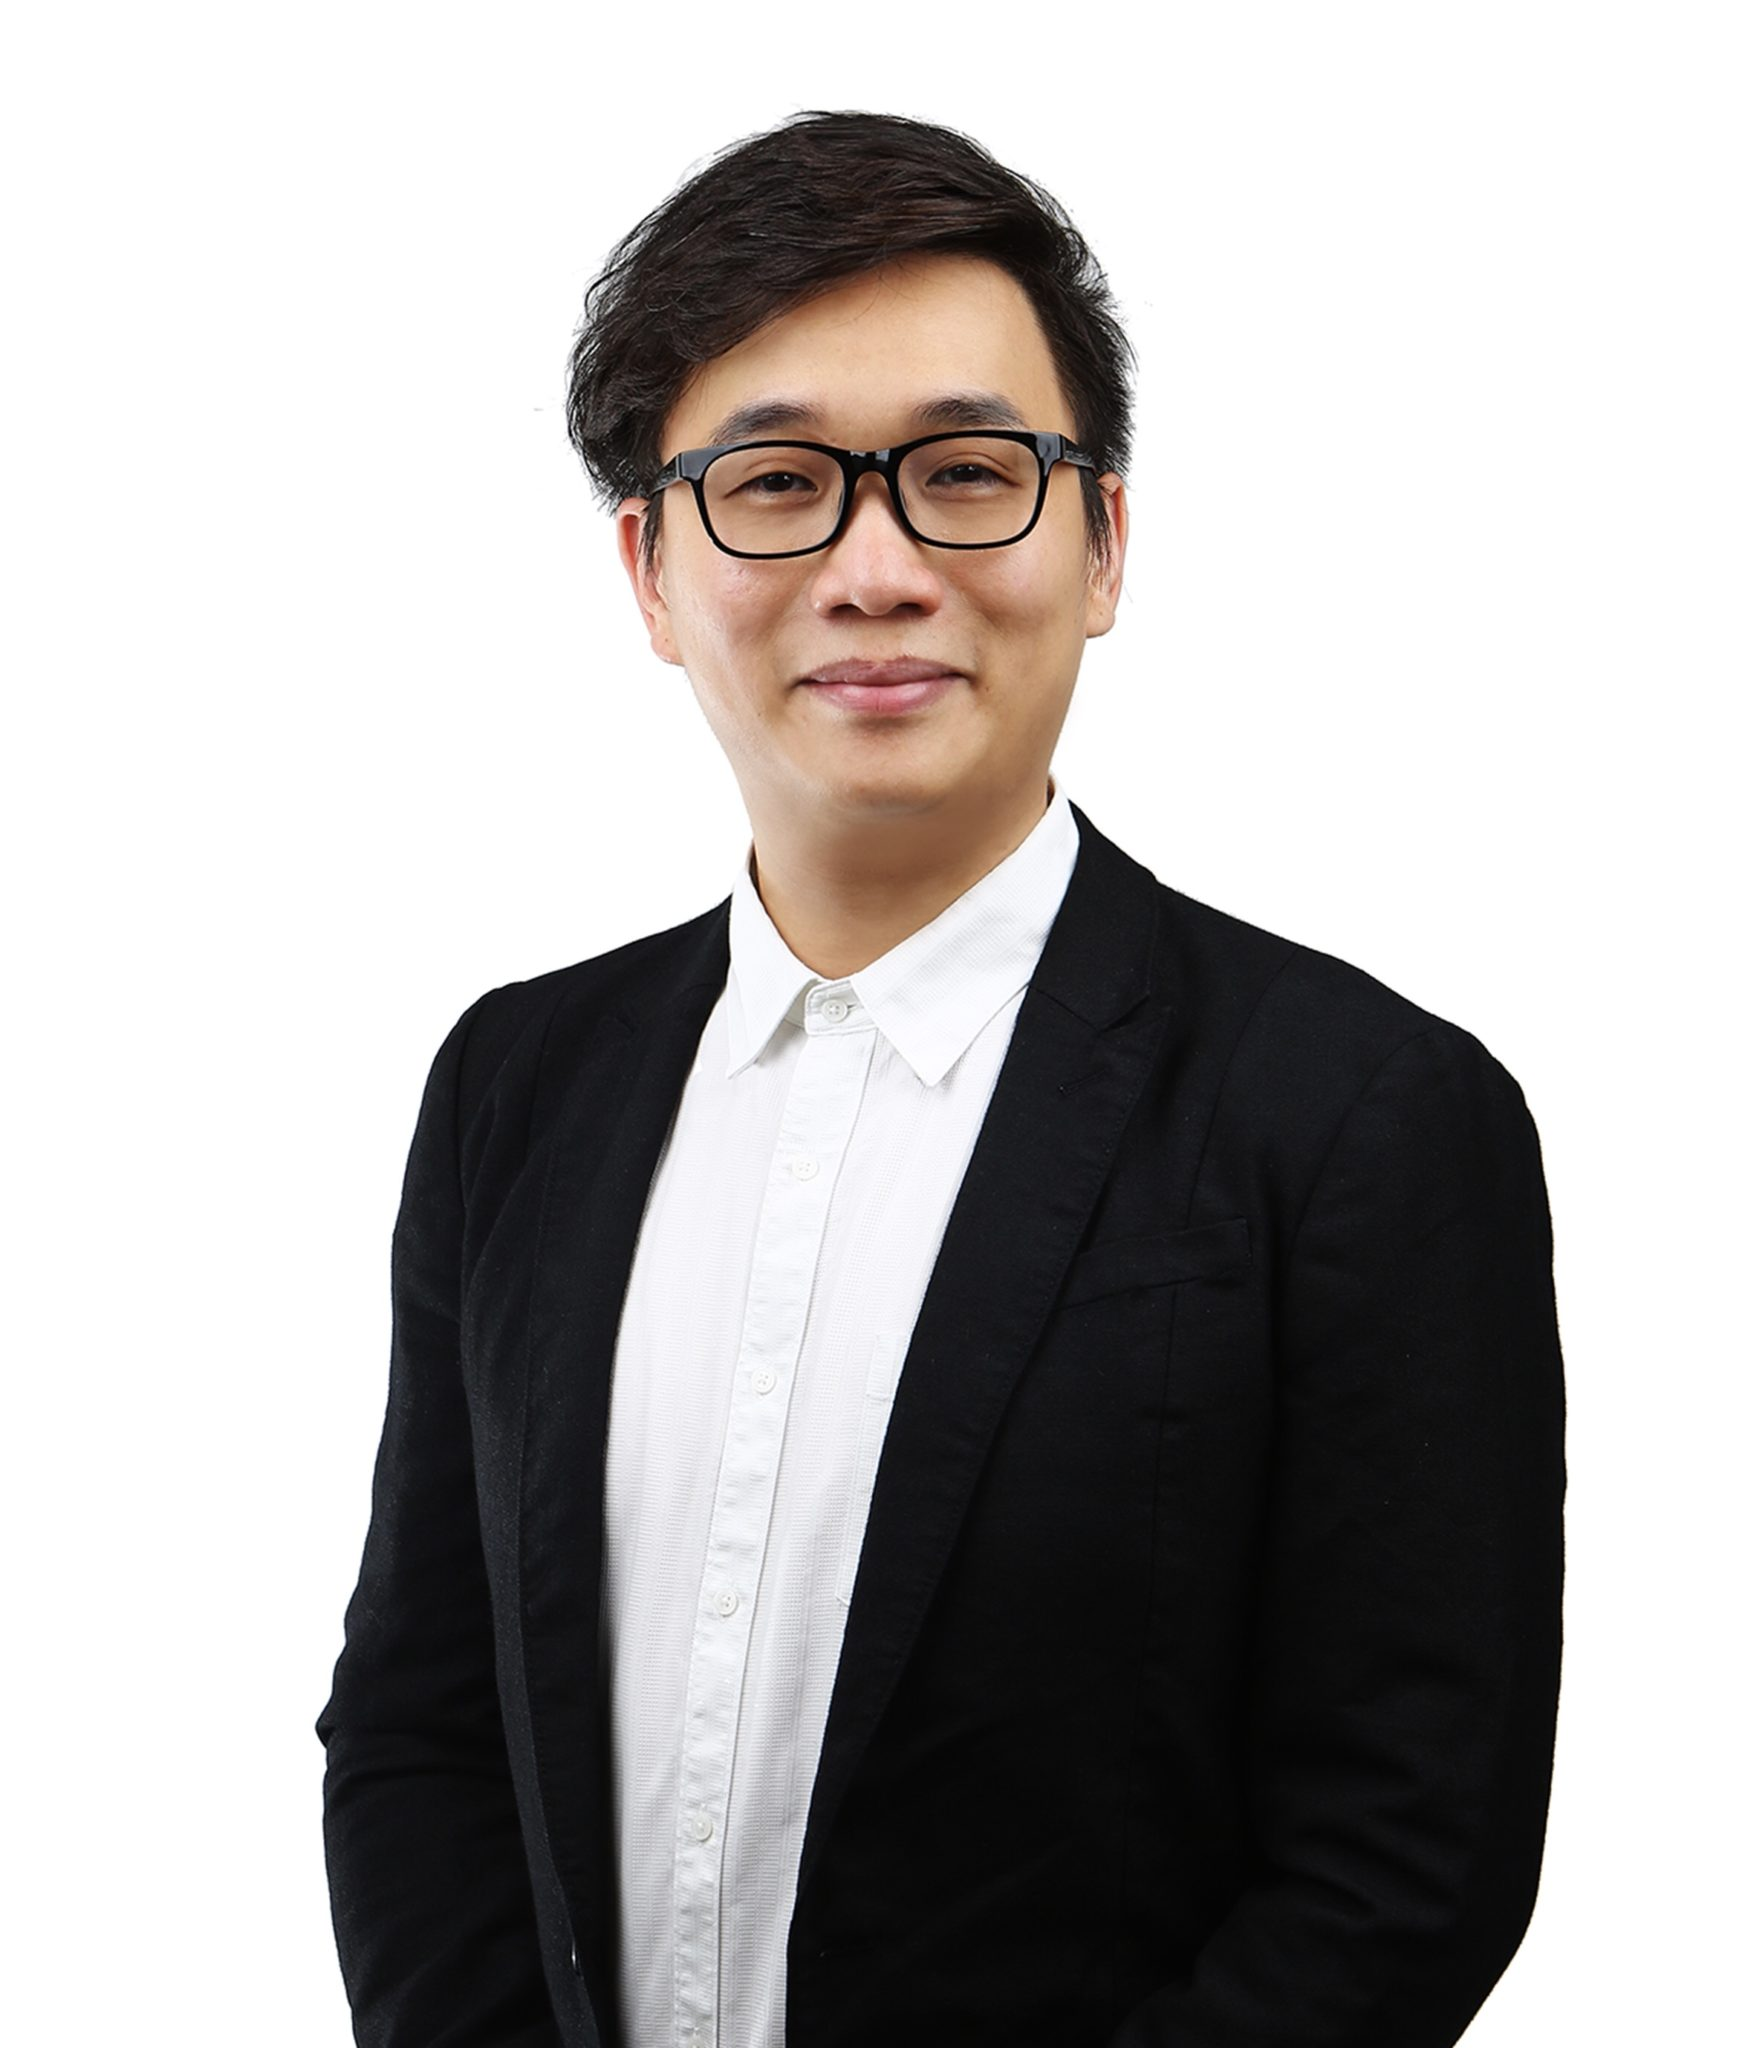 , Strategic Partnership Announced for Doge China, Korea and Singapore with Yuming.com and Blockcast.cc, Blockchain Adviser for Inter-Governmental Organisation | Book Author | Investor | Board Member